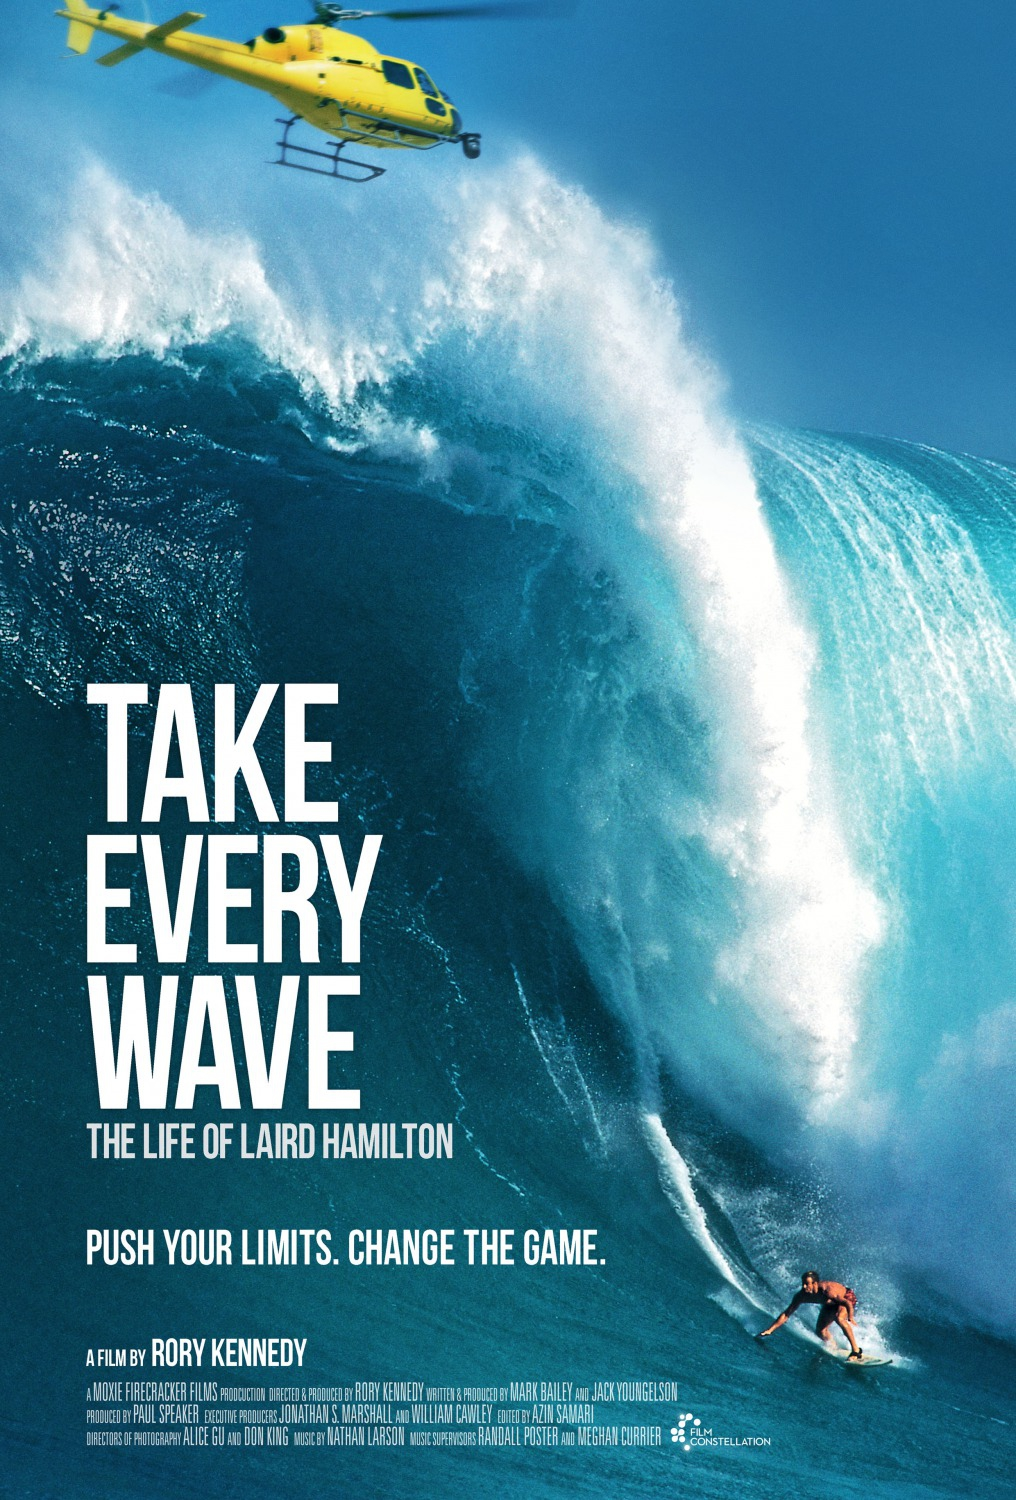 film, documentaire, Take every wave: the life of Laird Hamilton, Laird Hamilton, icône , surf, biopic, glisse, usa